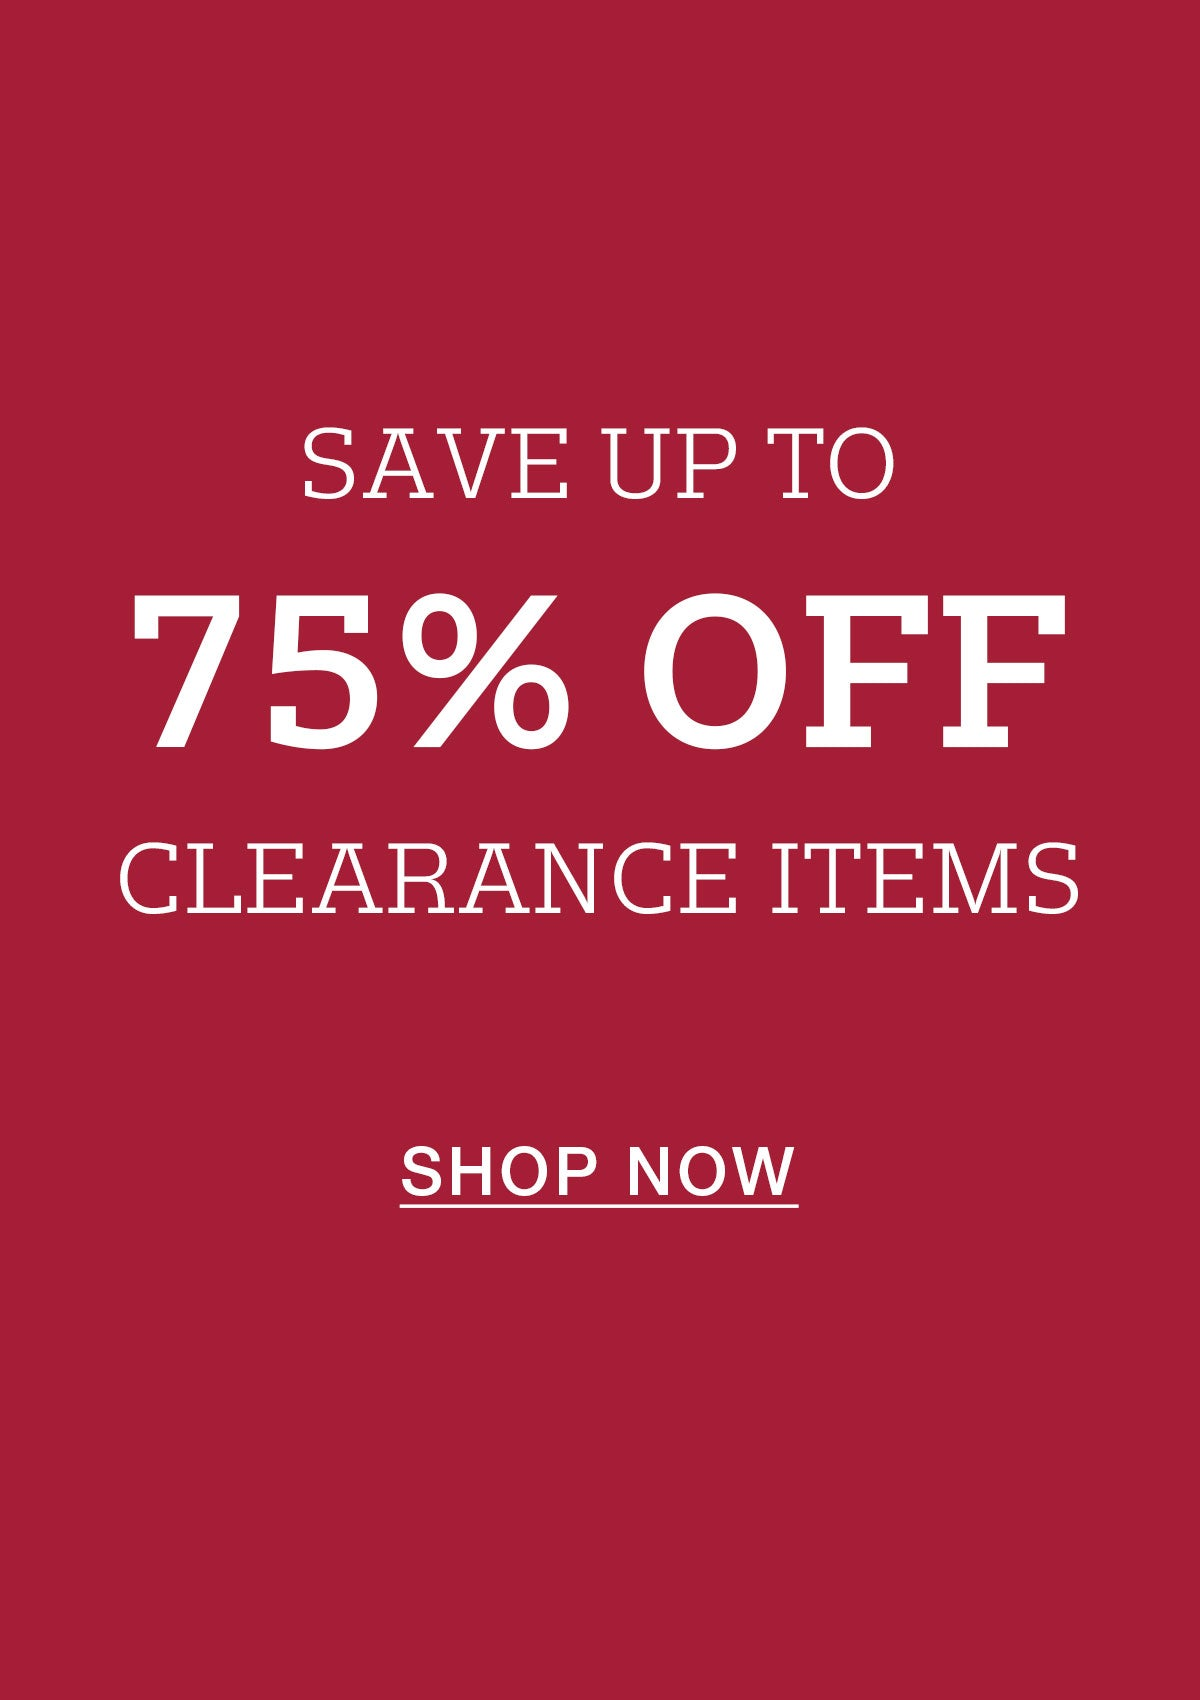 Save up to 75% off clearance.